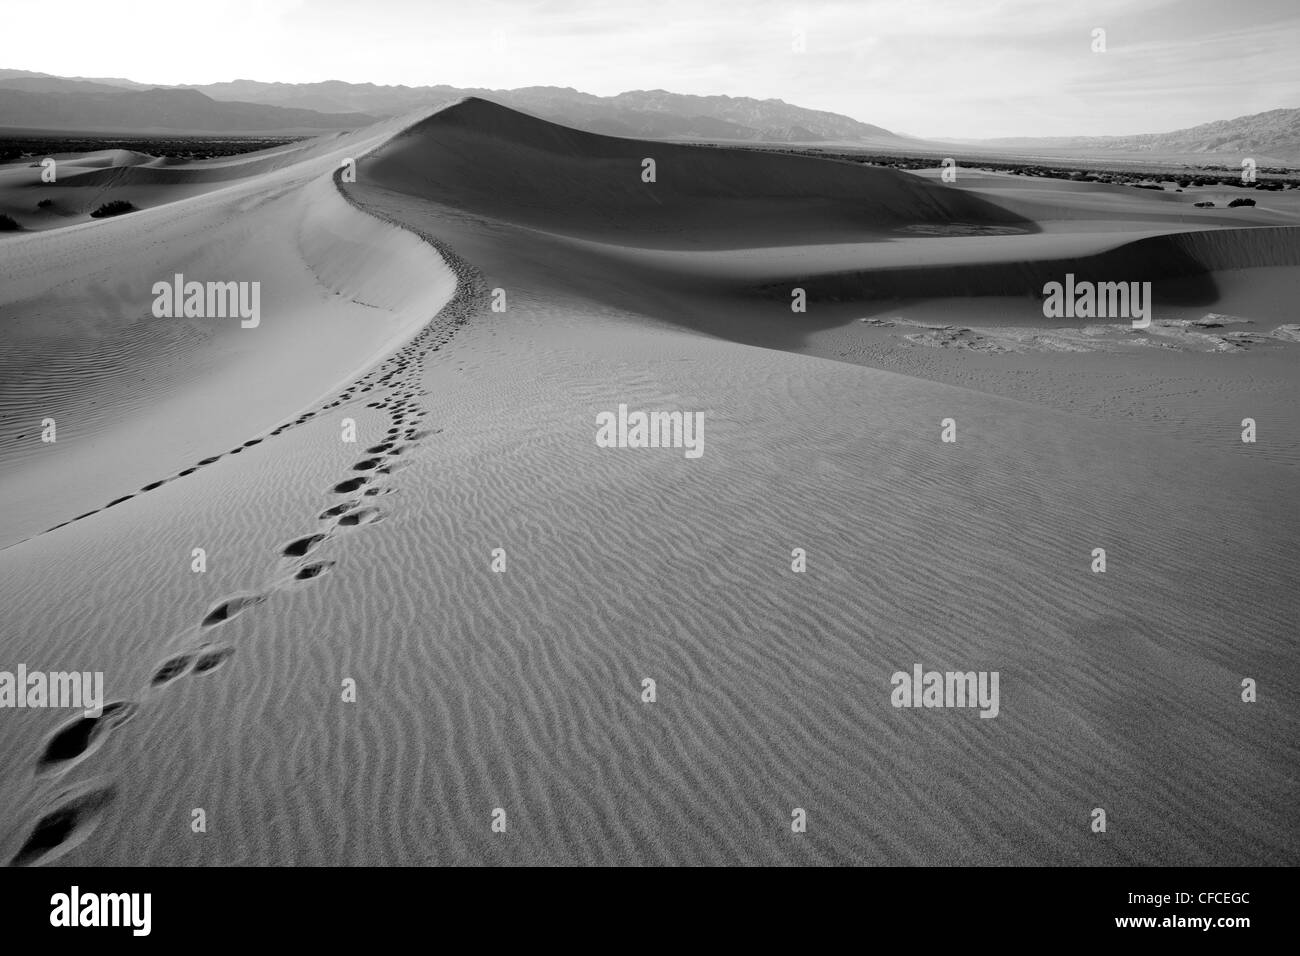 Mesquite Flat Sand Dunes in Death Valley, California, USA - Stock Image